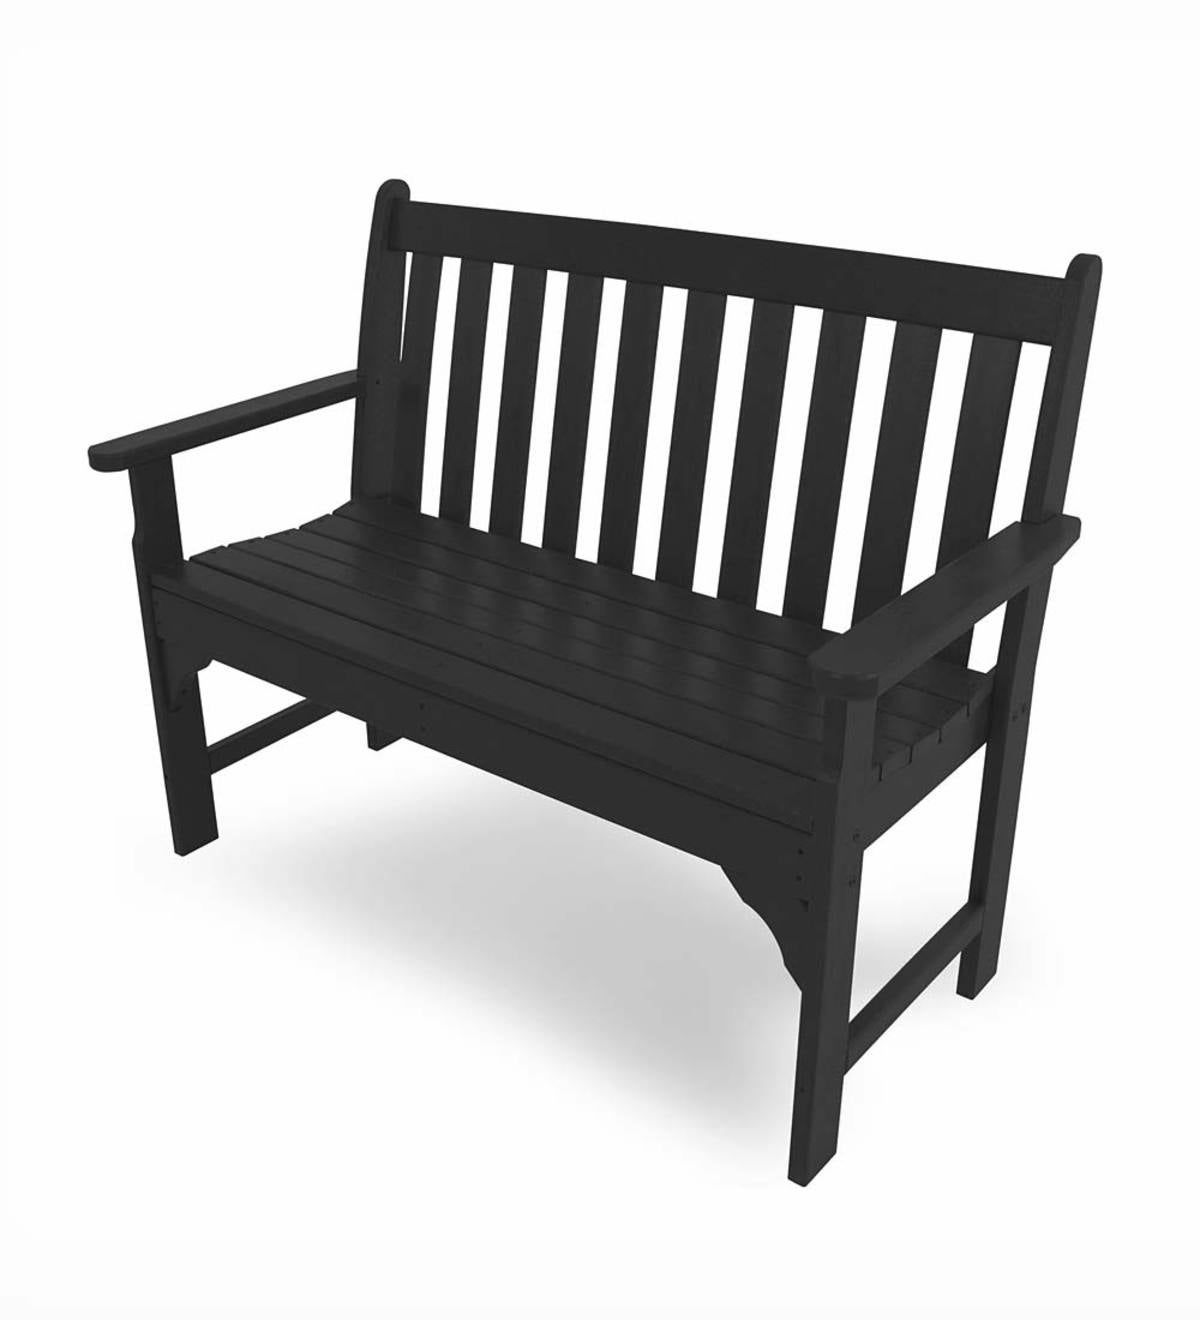 5' Poly-Wood Vineyard Outdoor Bench - Black